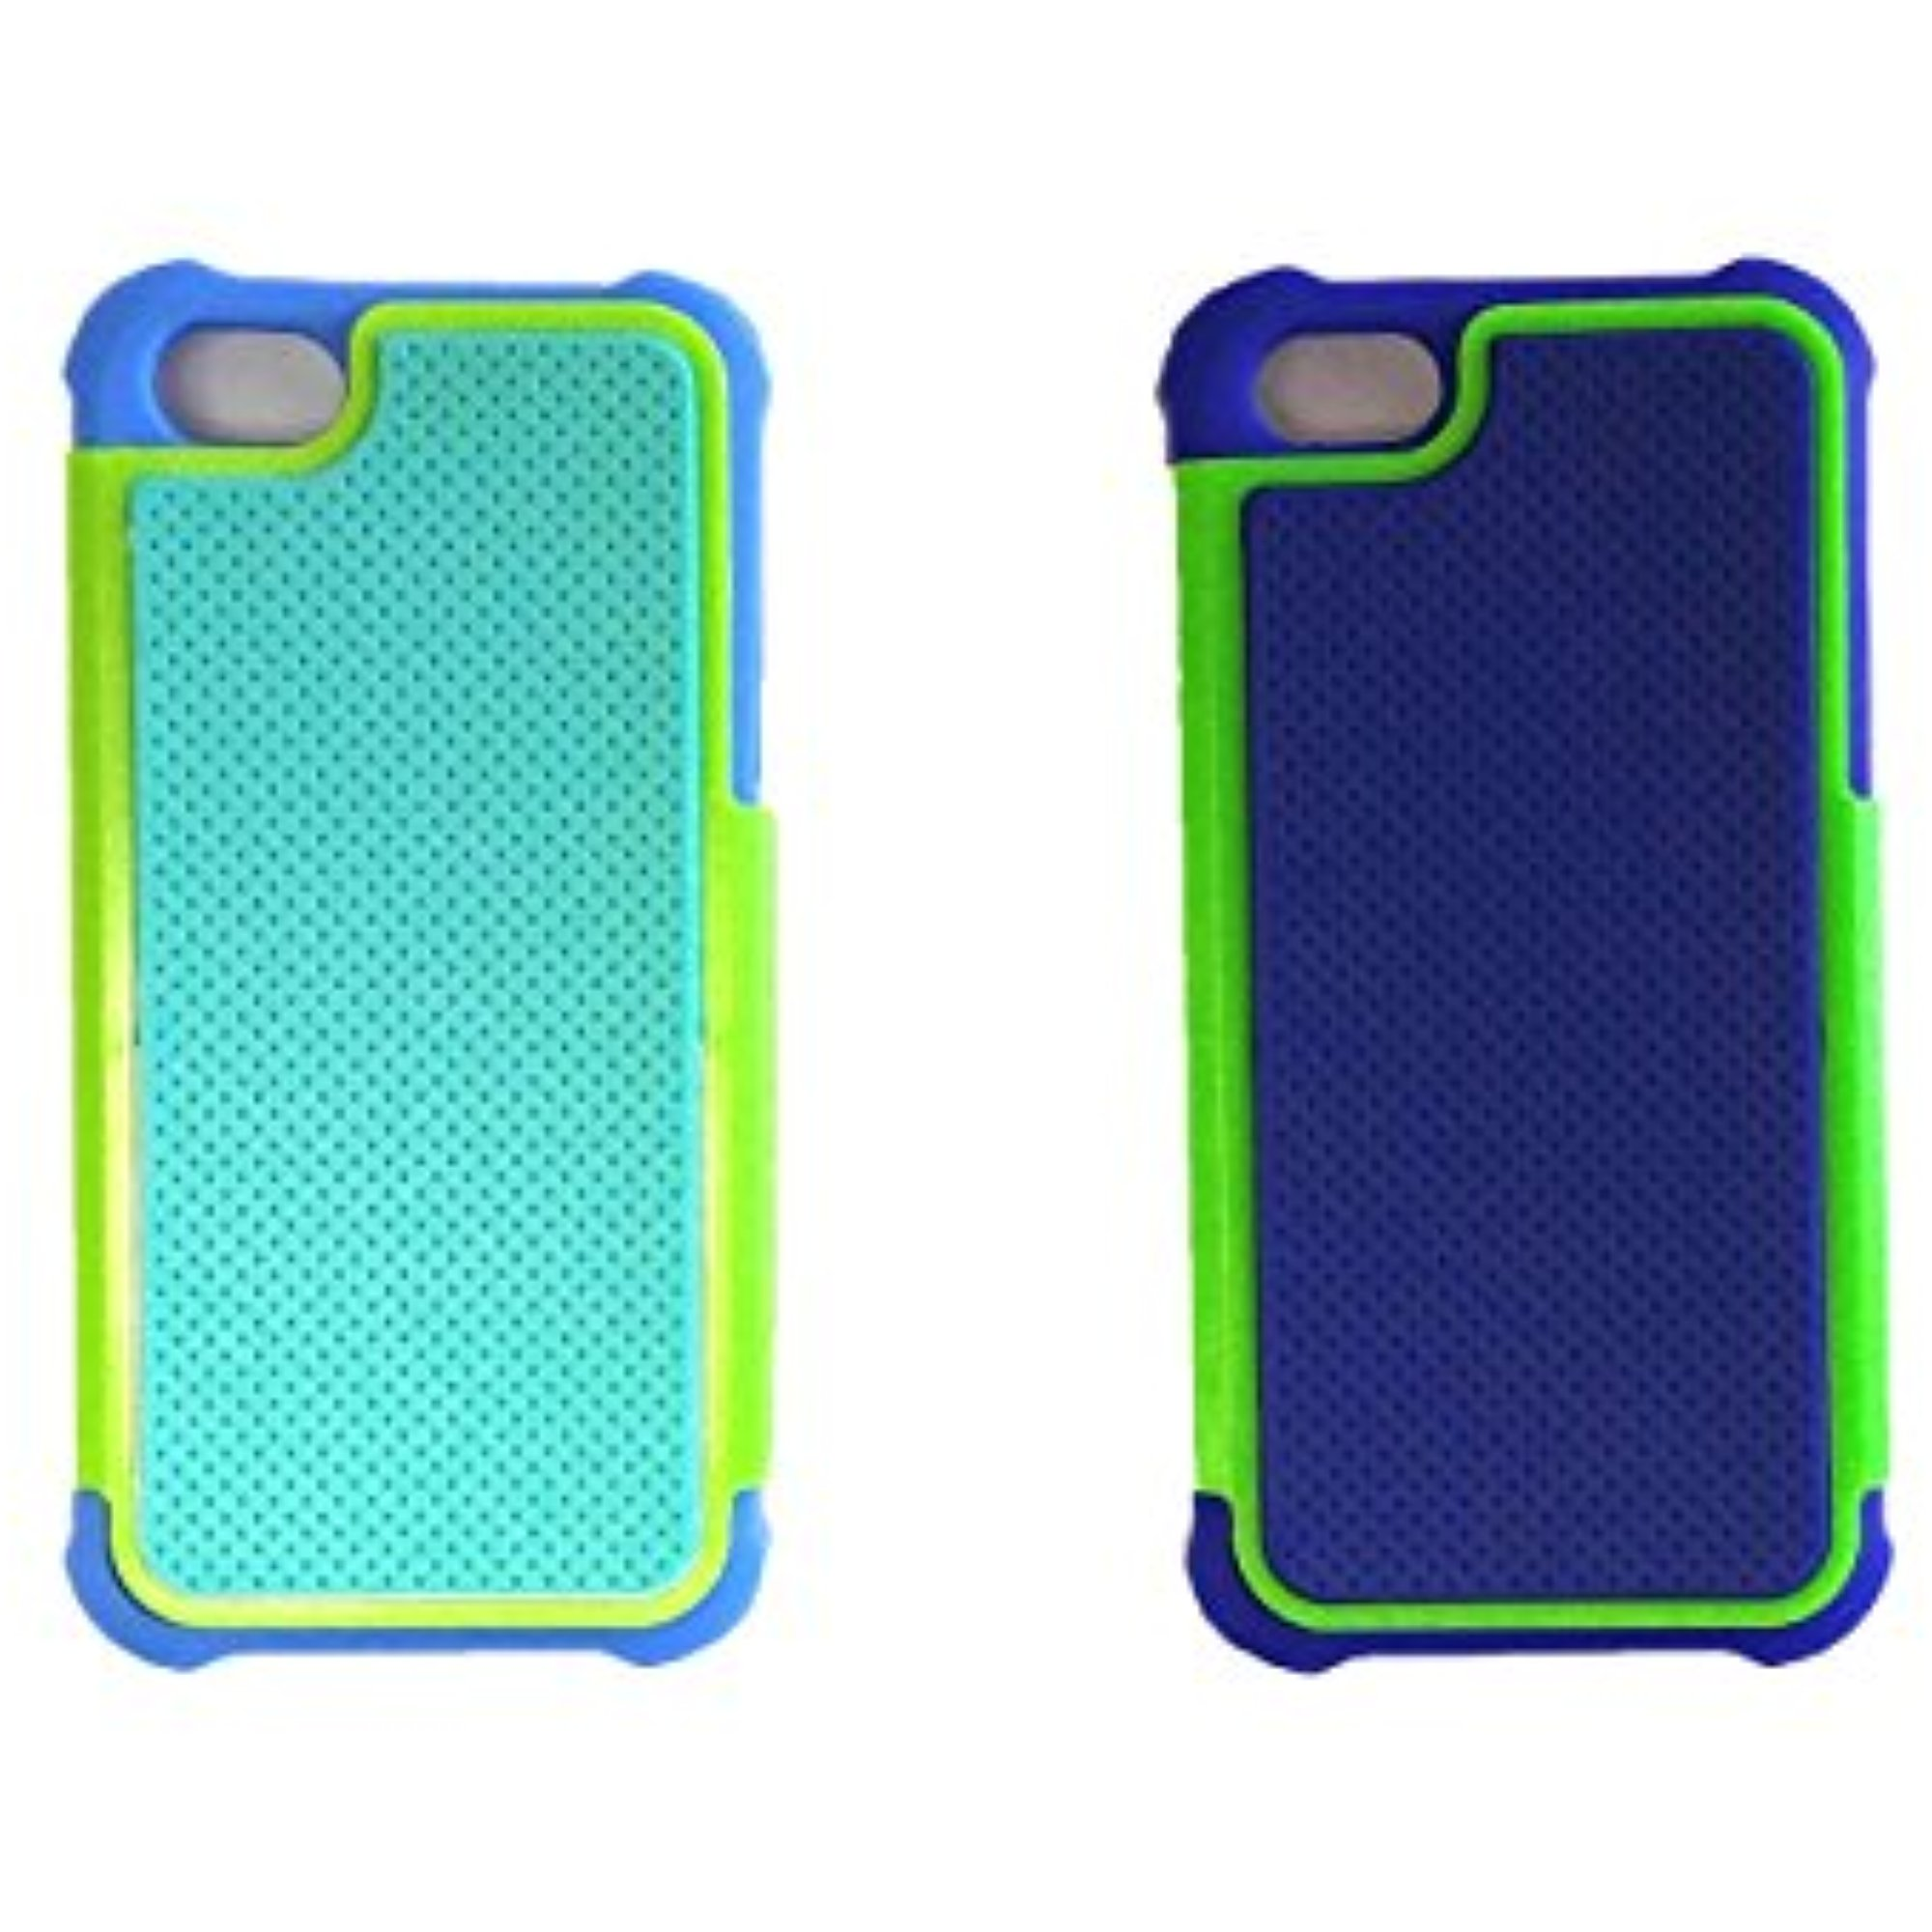 Set of 2 Lifestyle Colors & Prints Turtle Box iPhone 5 Cell Phone Cases in Blue and Green